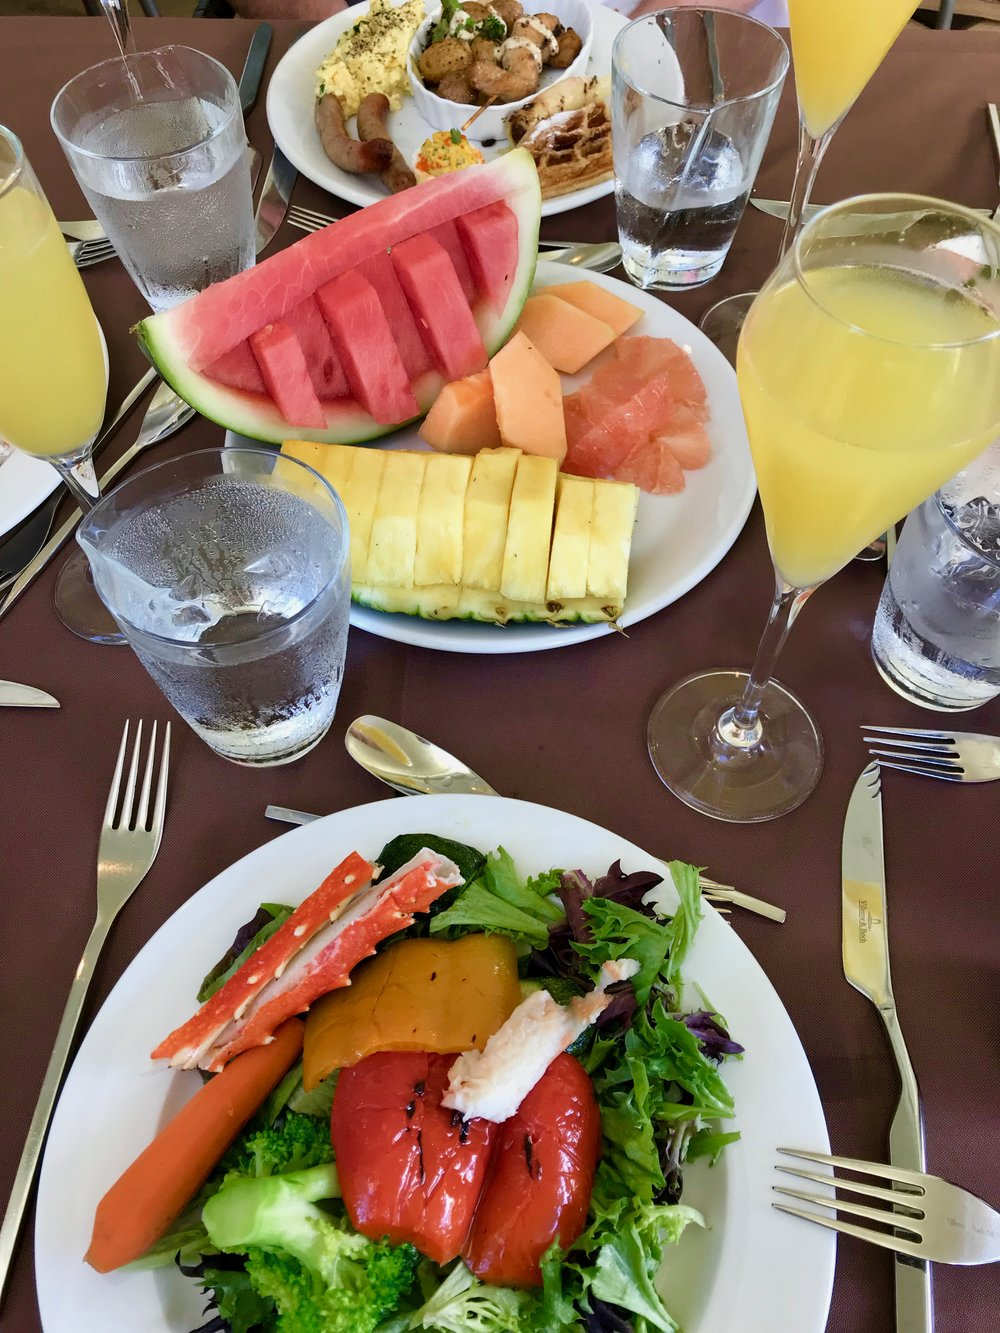 The Caribbean Club's famous brunch